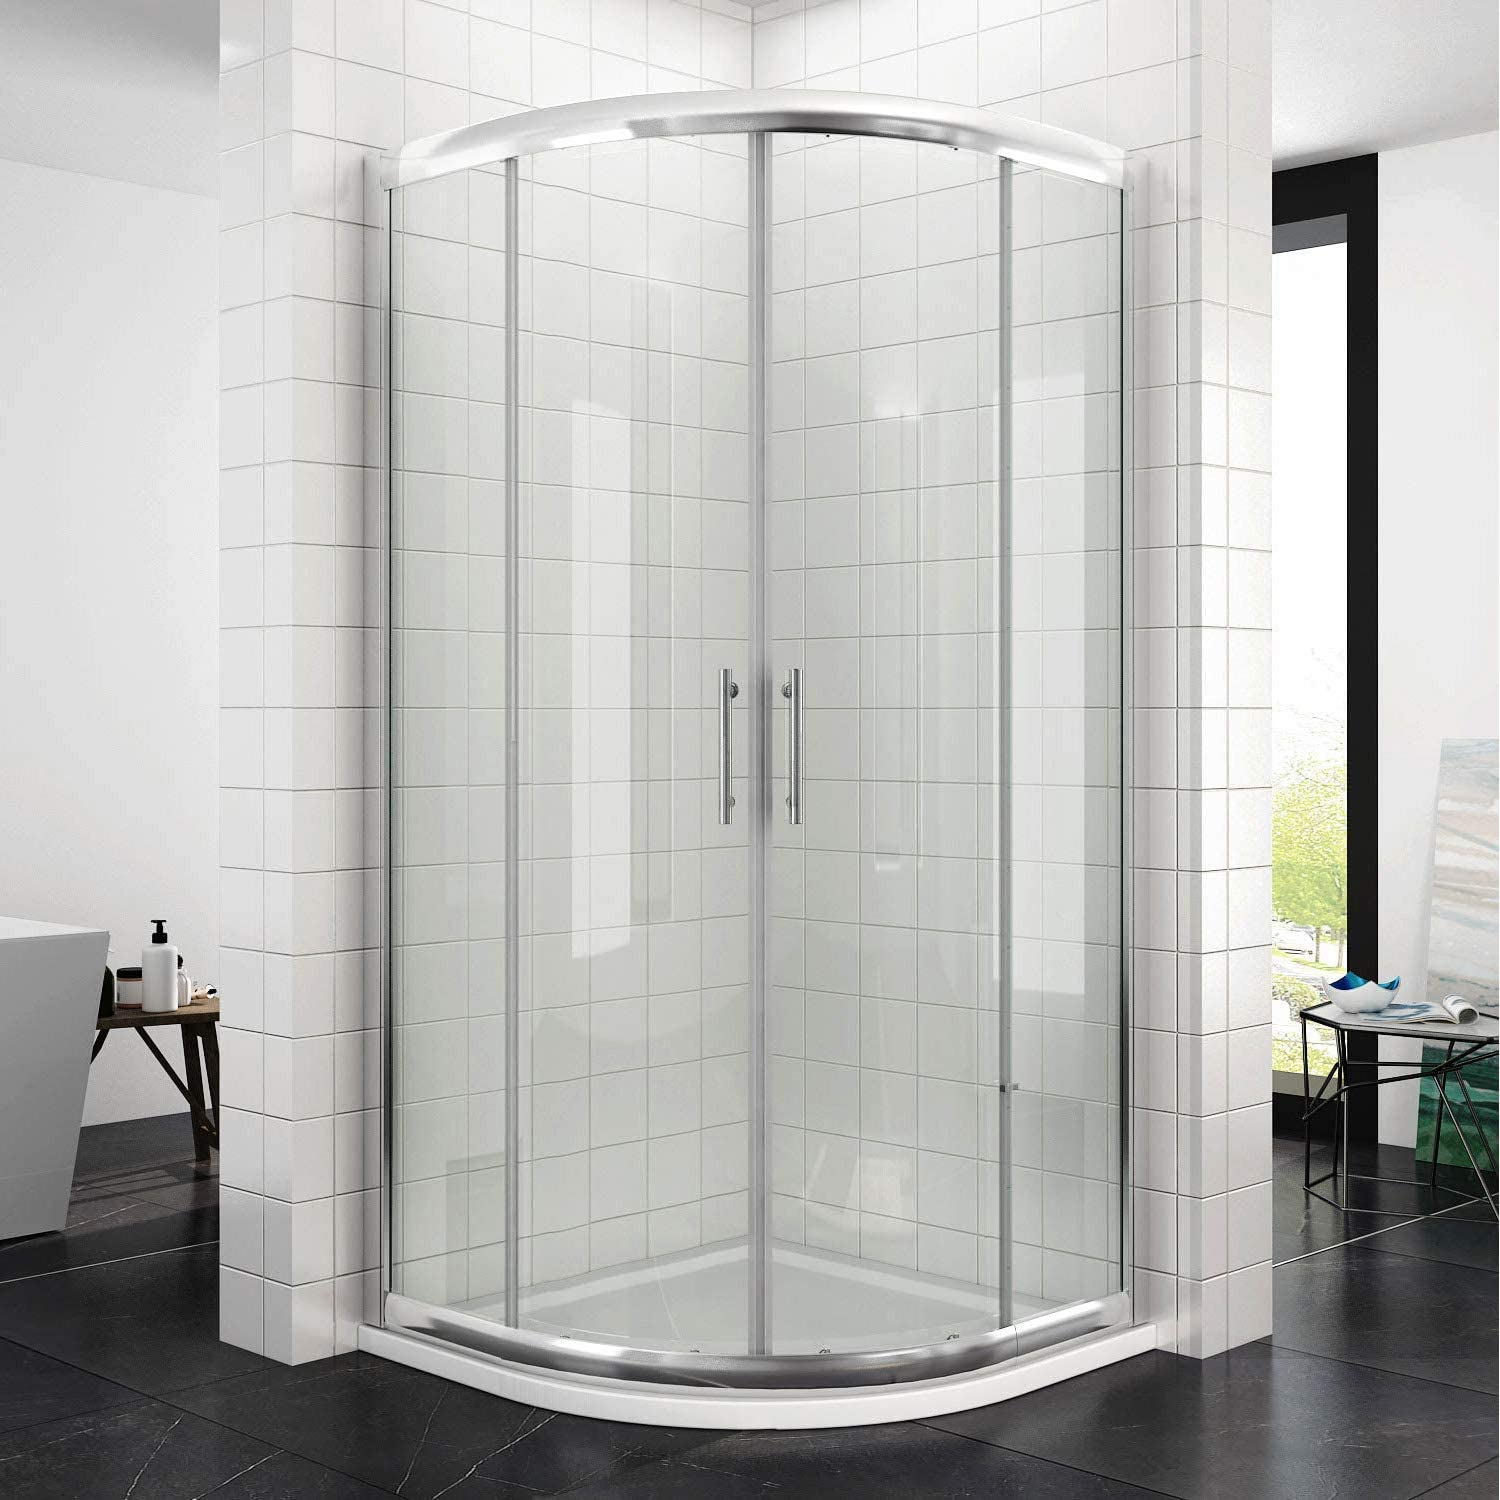 ELEGANT 900 x 900 mm Quadrant Shower Door 6mm Safety Glass Sliding Shower Enclosure with Stainless Steel Handle, Chrome